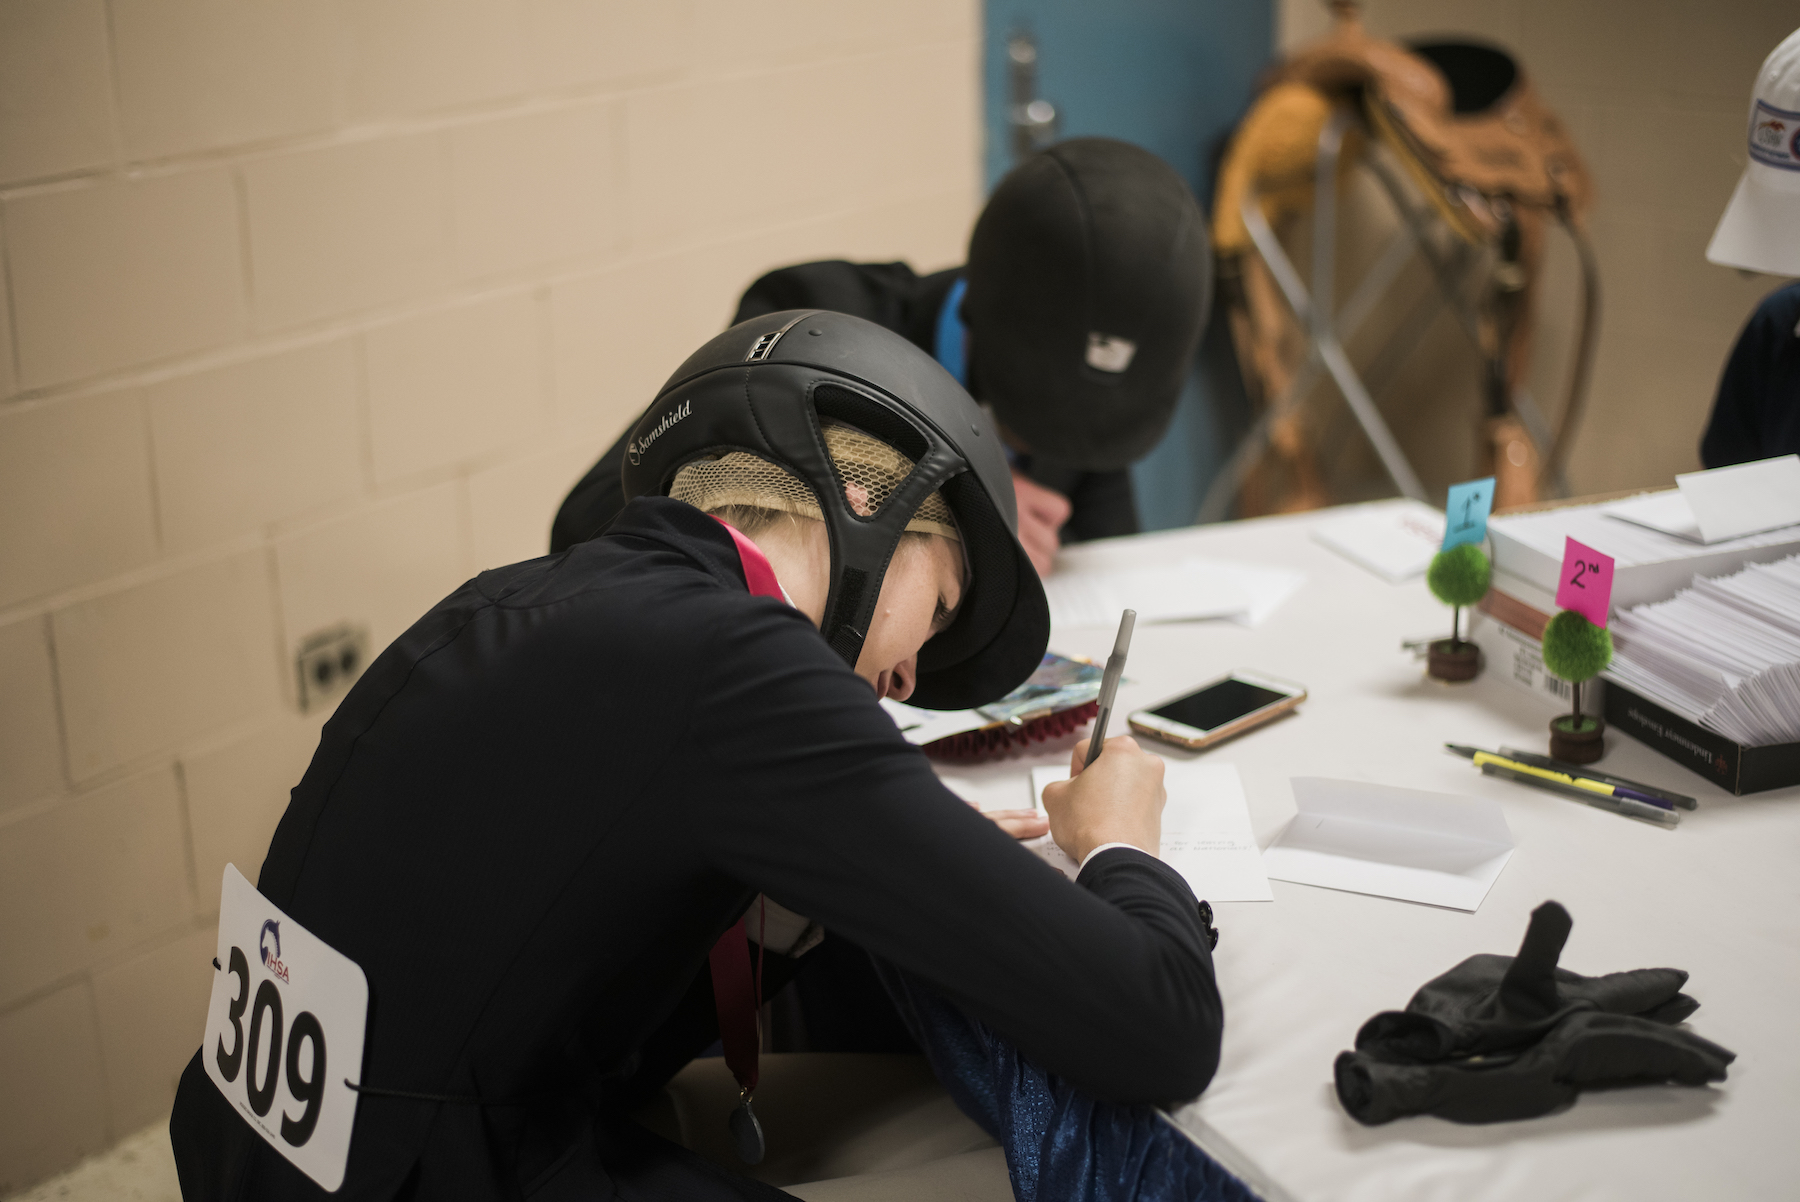 Halle Kutsche and Michael Andrade write thank you notes to the sponsors. Photo EQ by Media